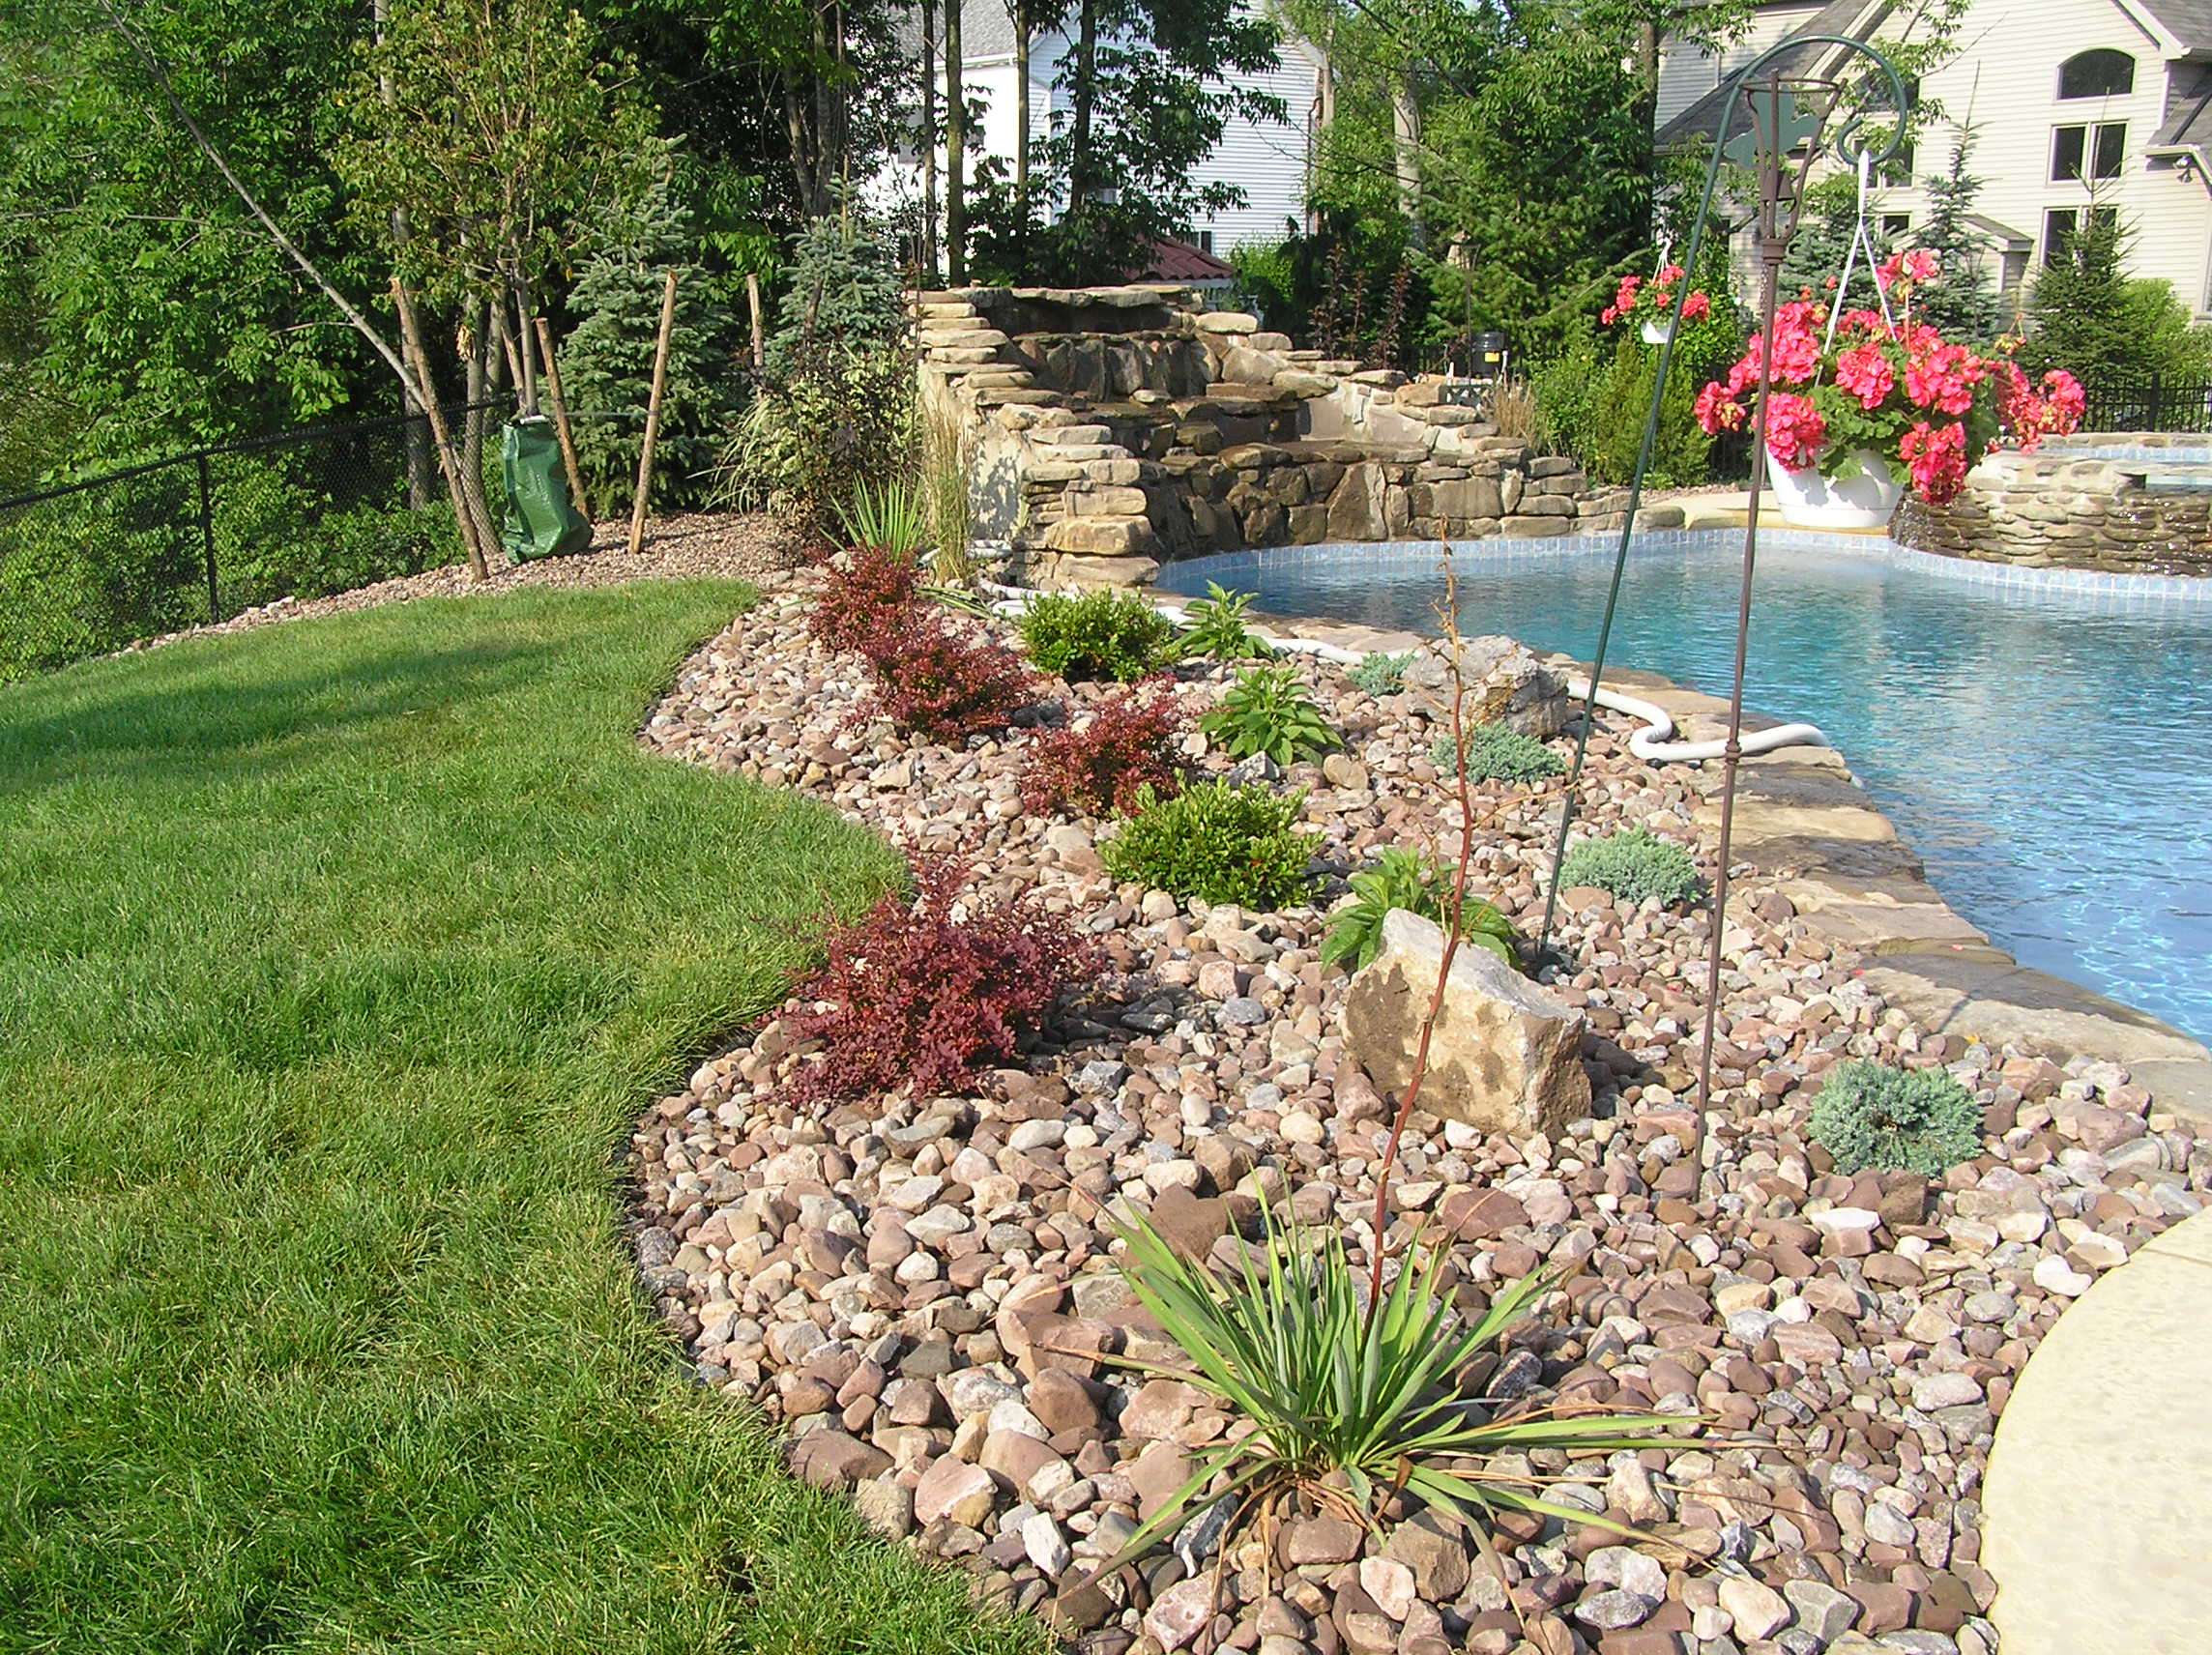 Greenview landscaping lawncare hardscape irrigation for Gardening and landscaping services